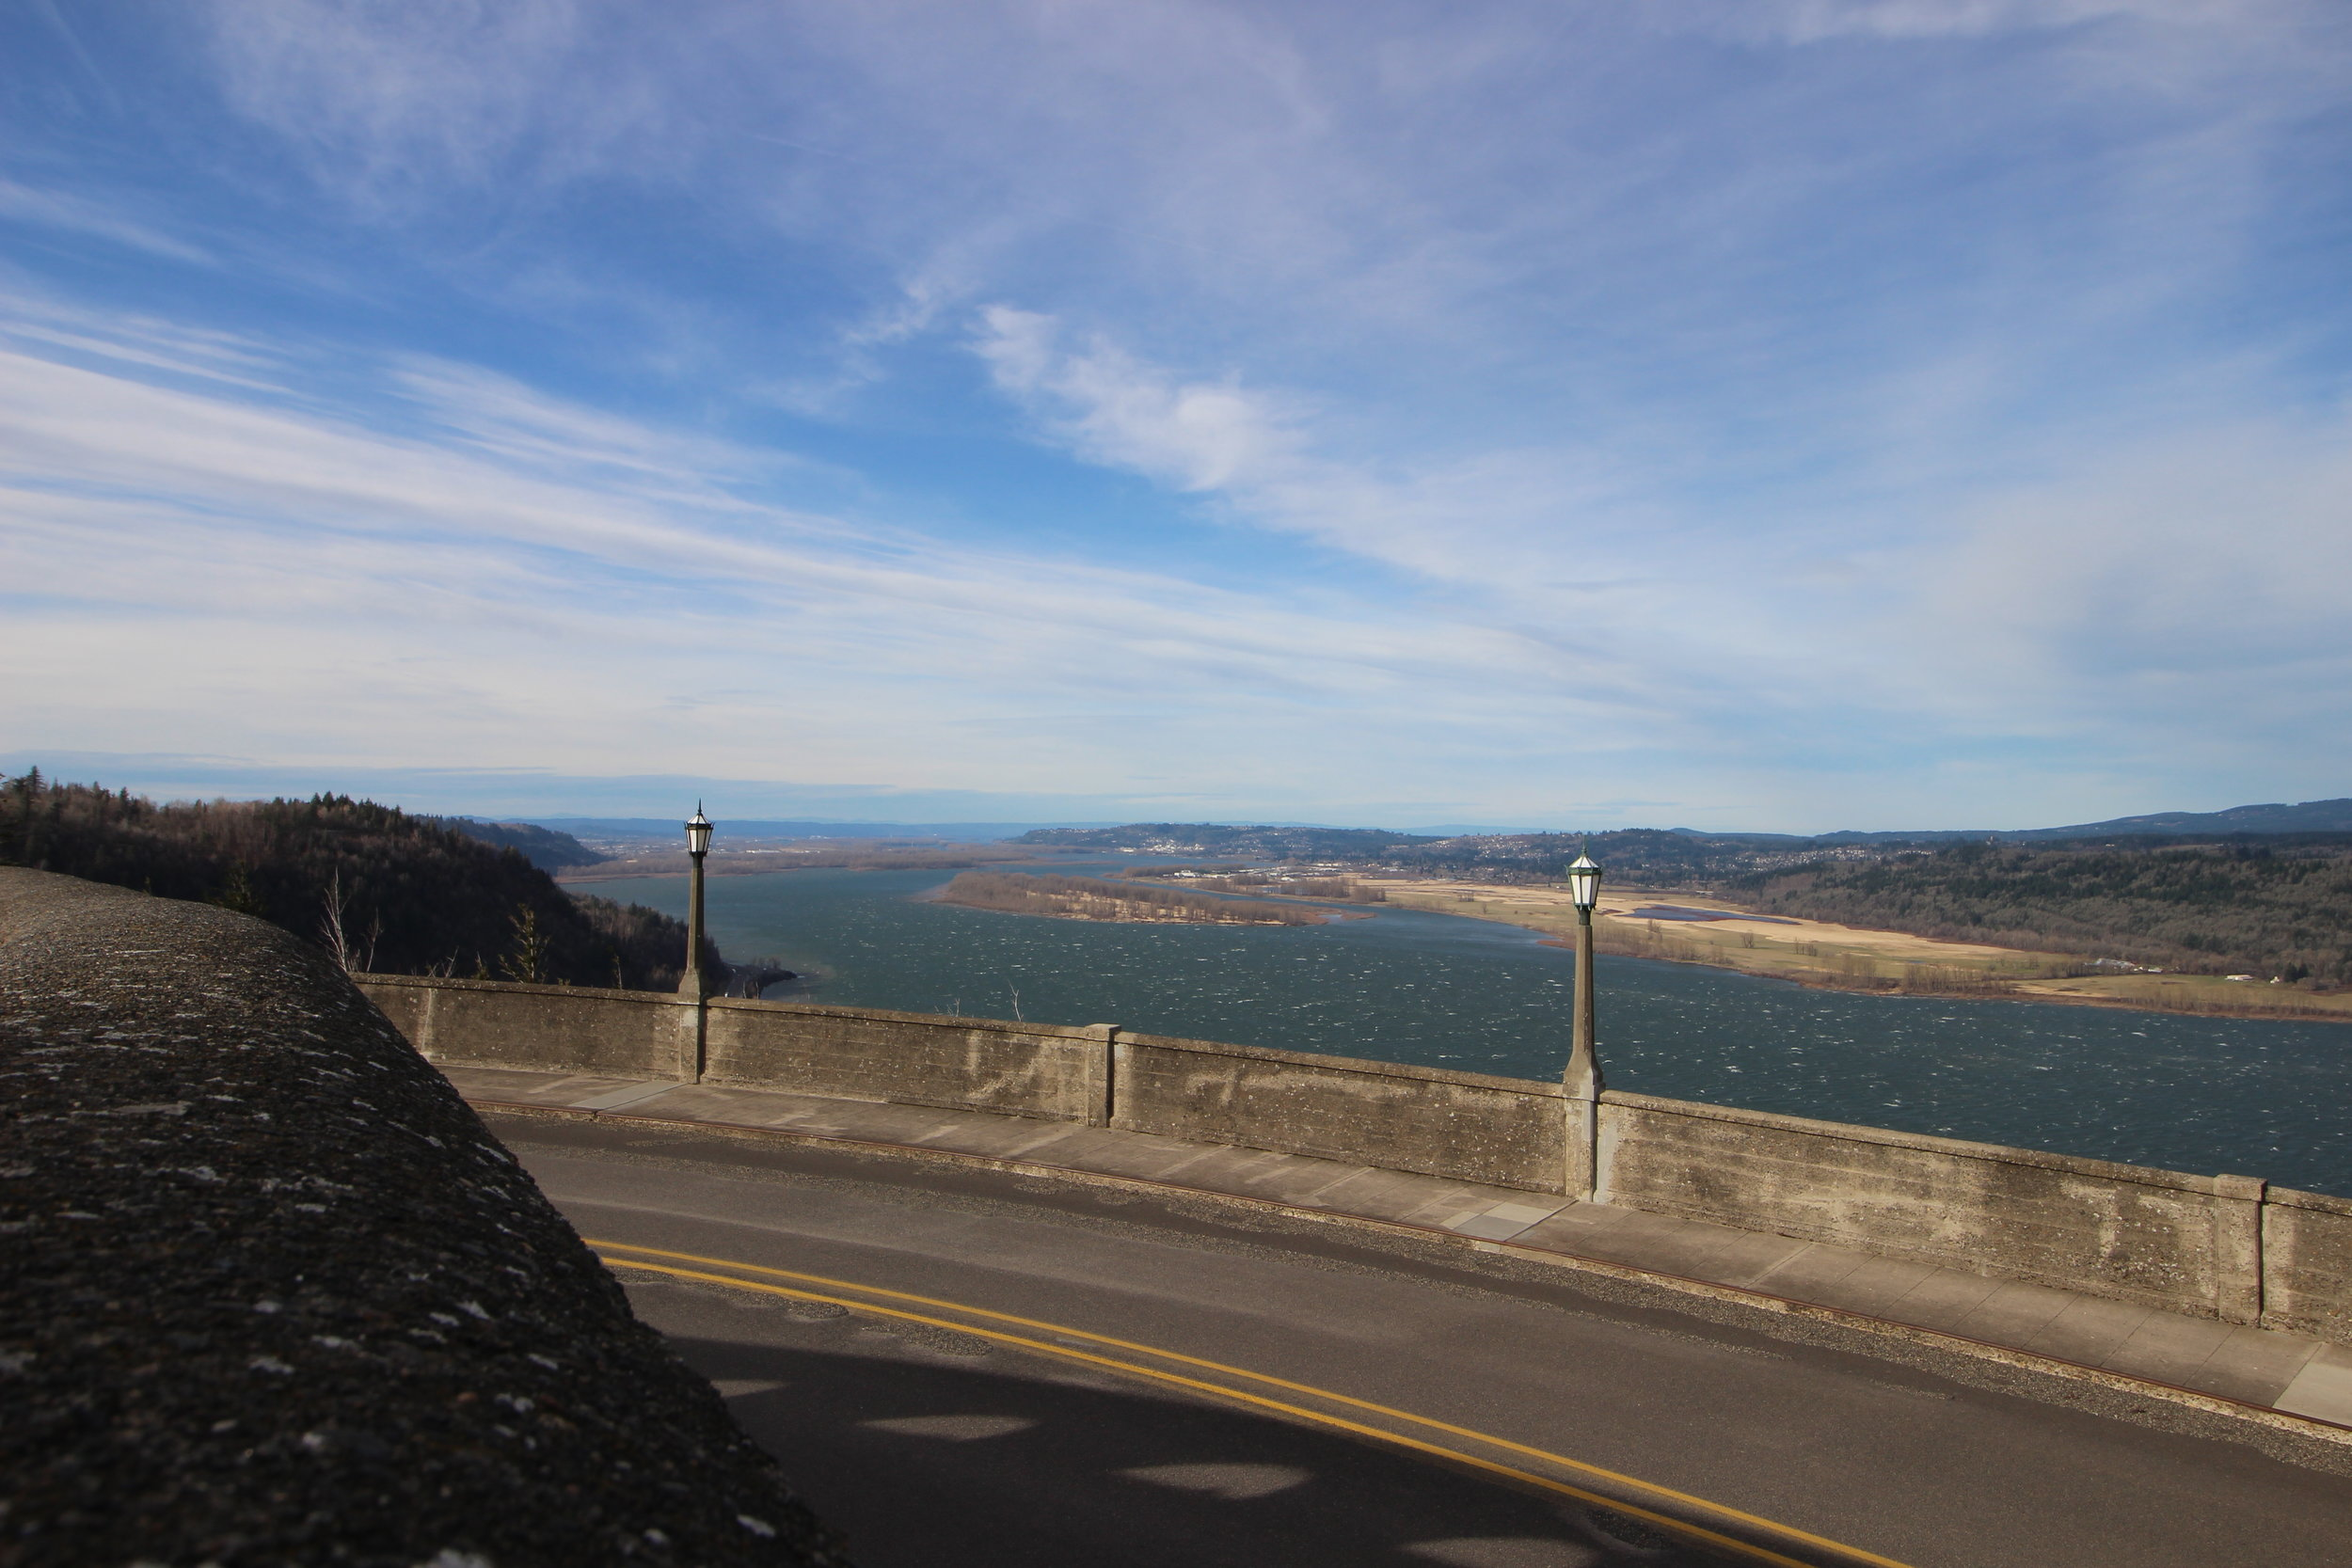 Our drive along the Historic Columbia River Highway